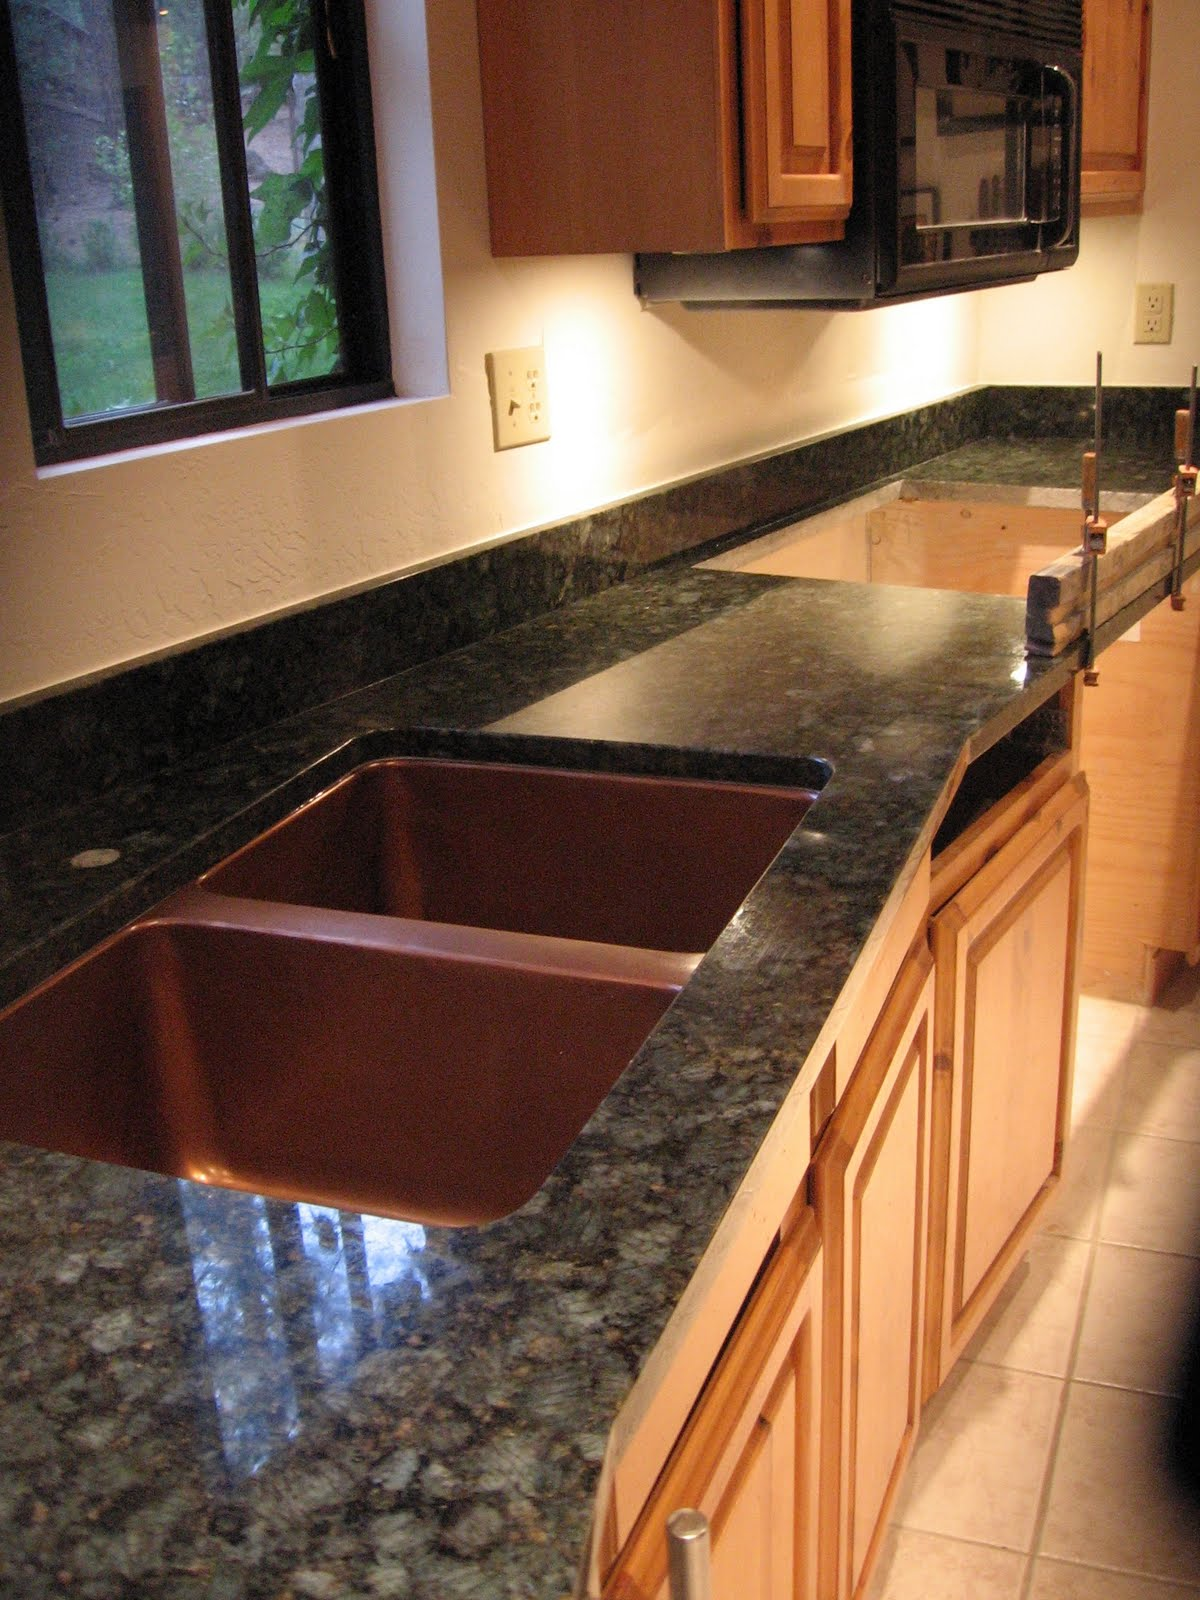 Dusty Coyote Mountain House Kitchen Remodel Uder Way